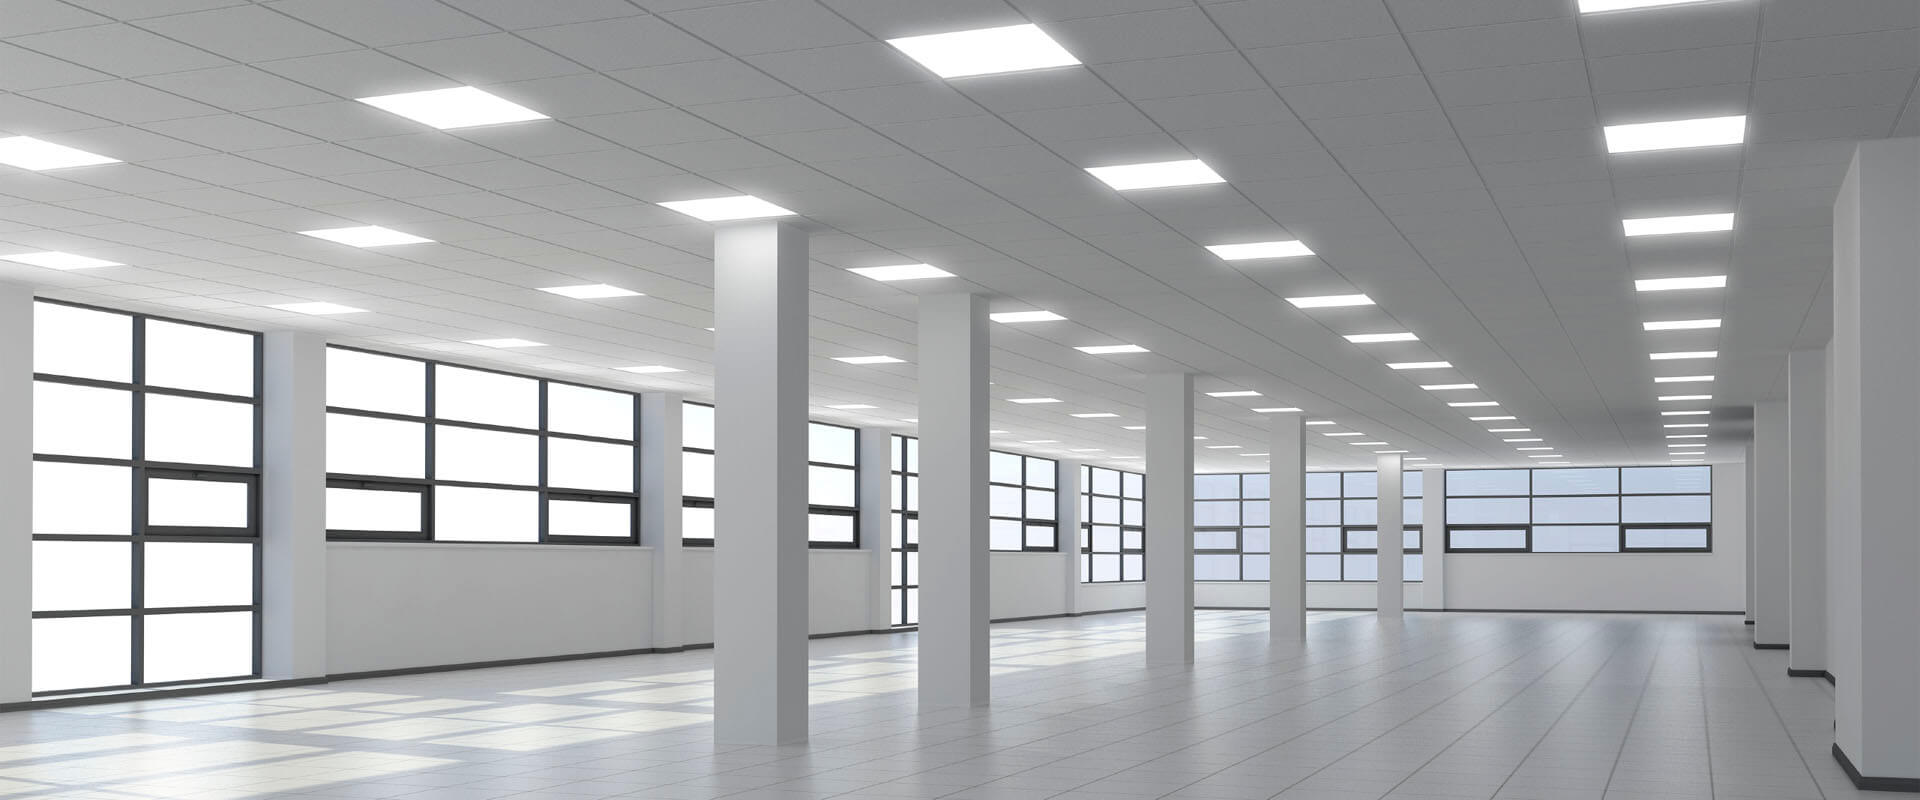 Led Lighting Retrofits For Commercial Buildings The How And Why Conservehub Commercial Industrial Energy Reduction Solutions Cloud Based Business Growth Platform Identify Capture And Close More Deals